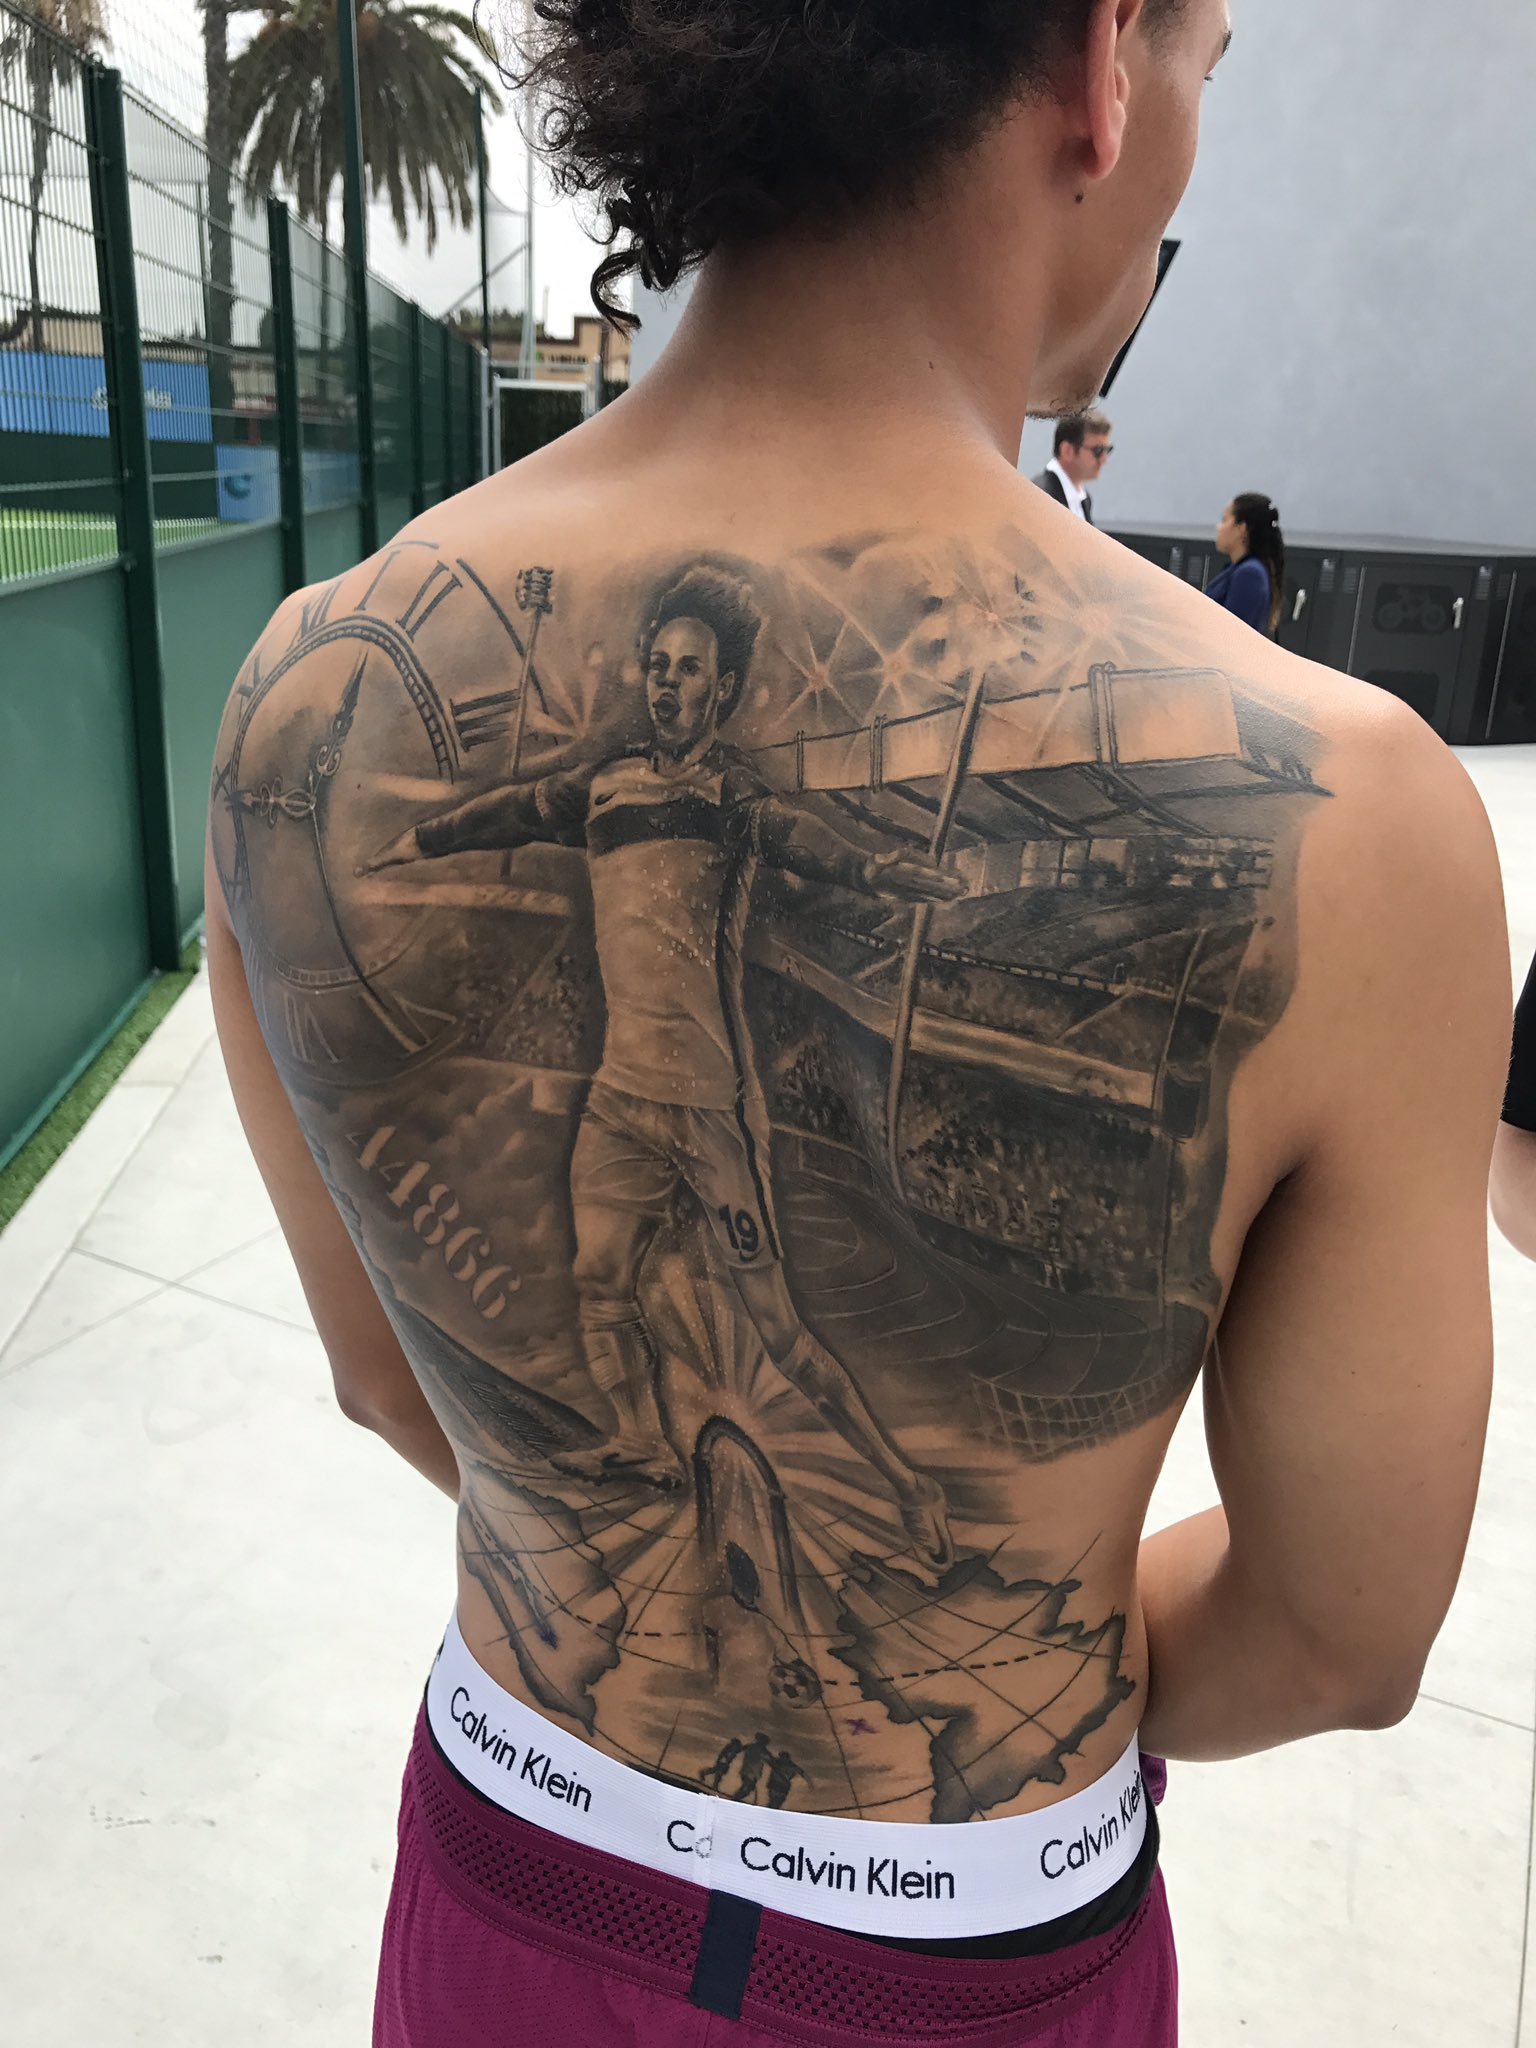 Leroy Sané regrets getting infamous Manchester City back tattoo